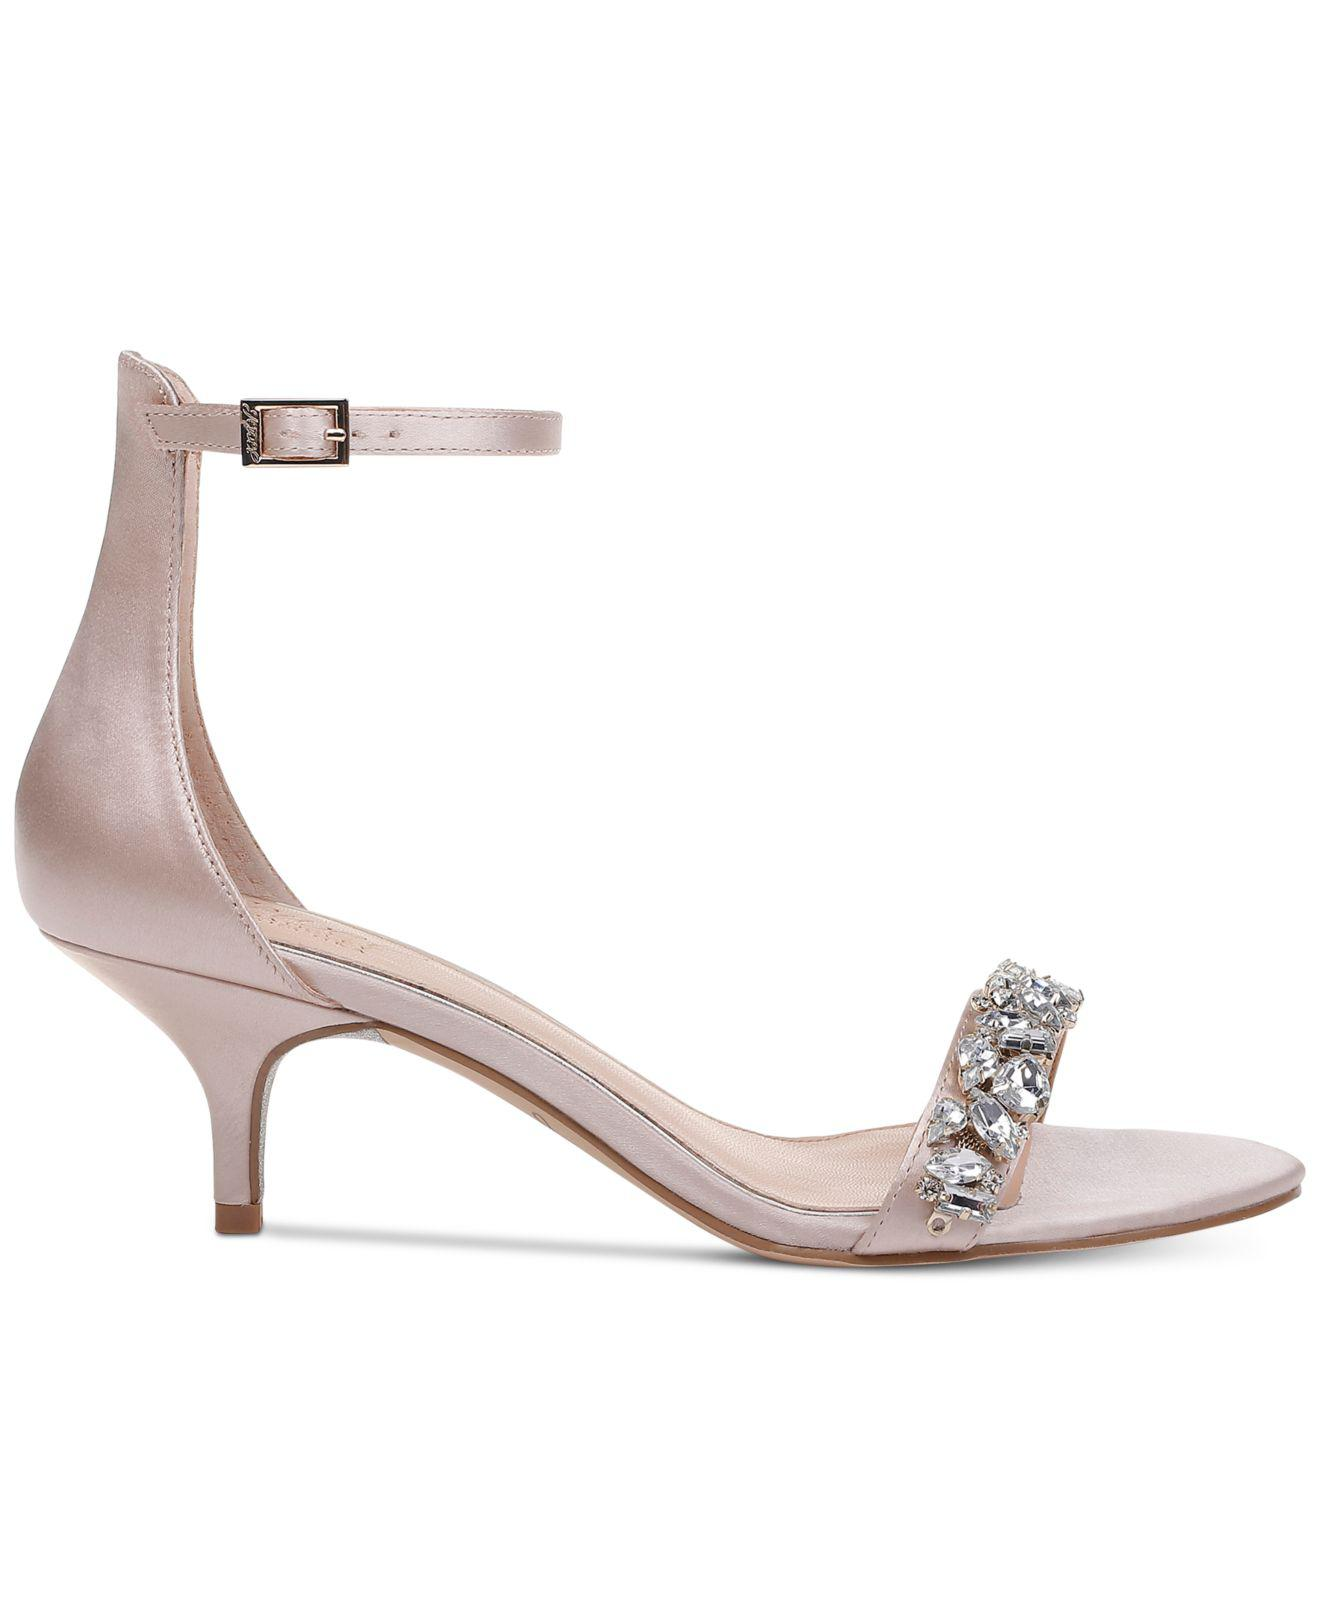 Lyst - Badgley Mischka Dash Kitten-heel Evening Sandals